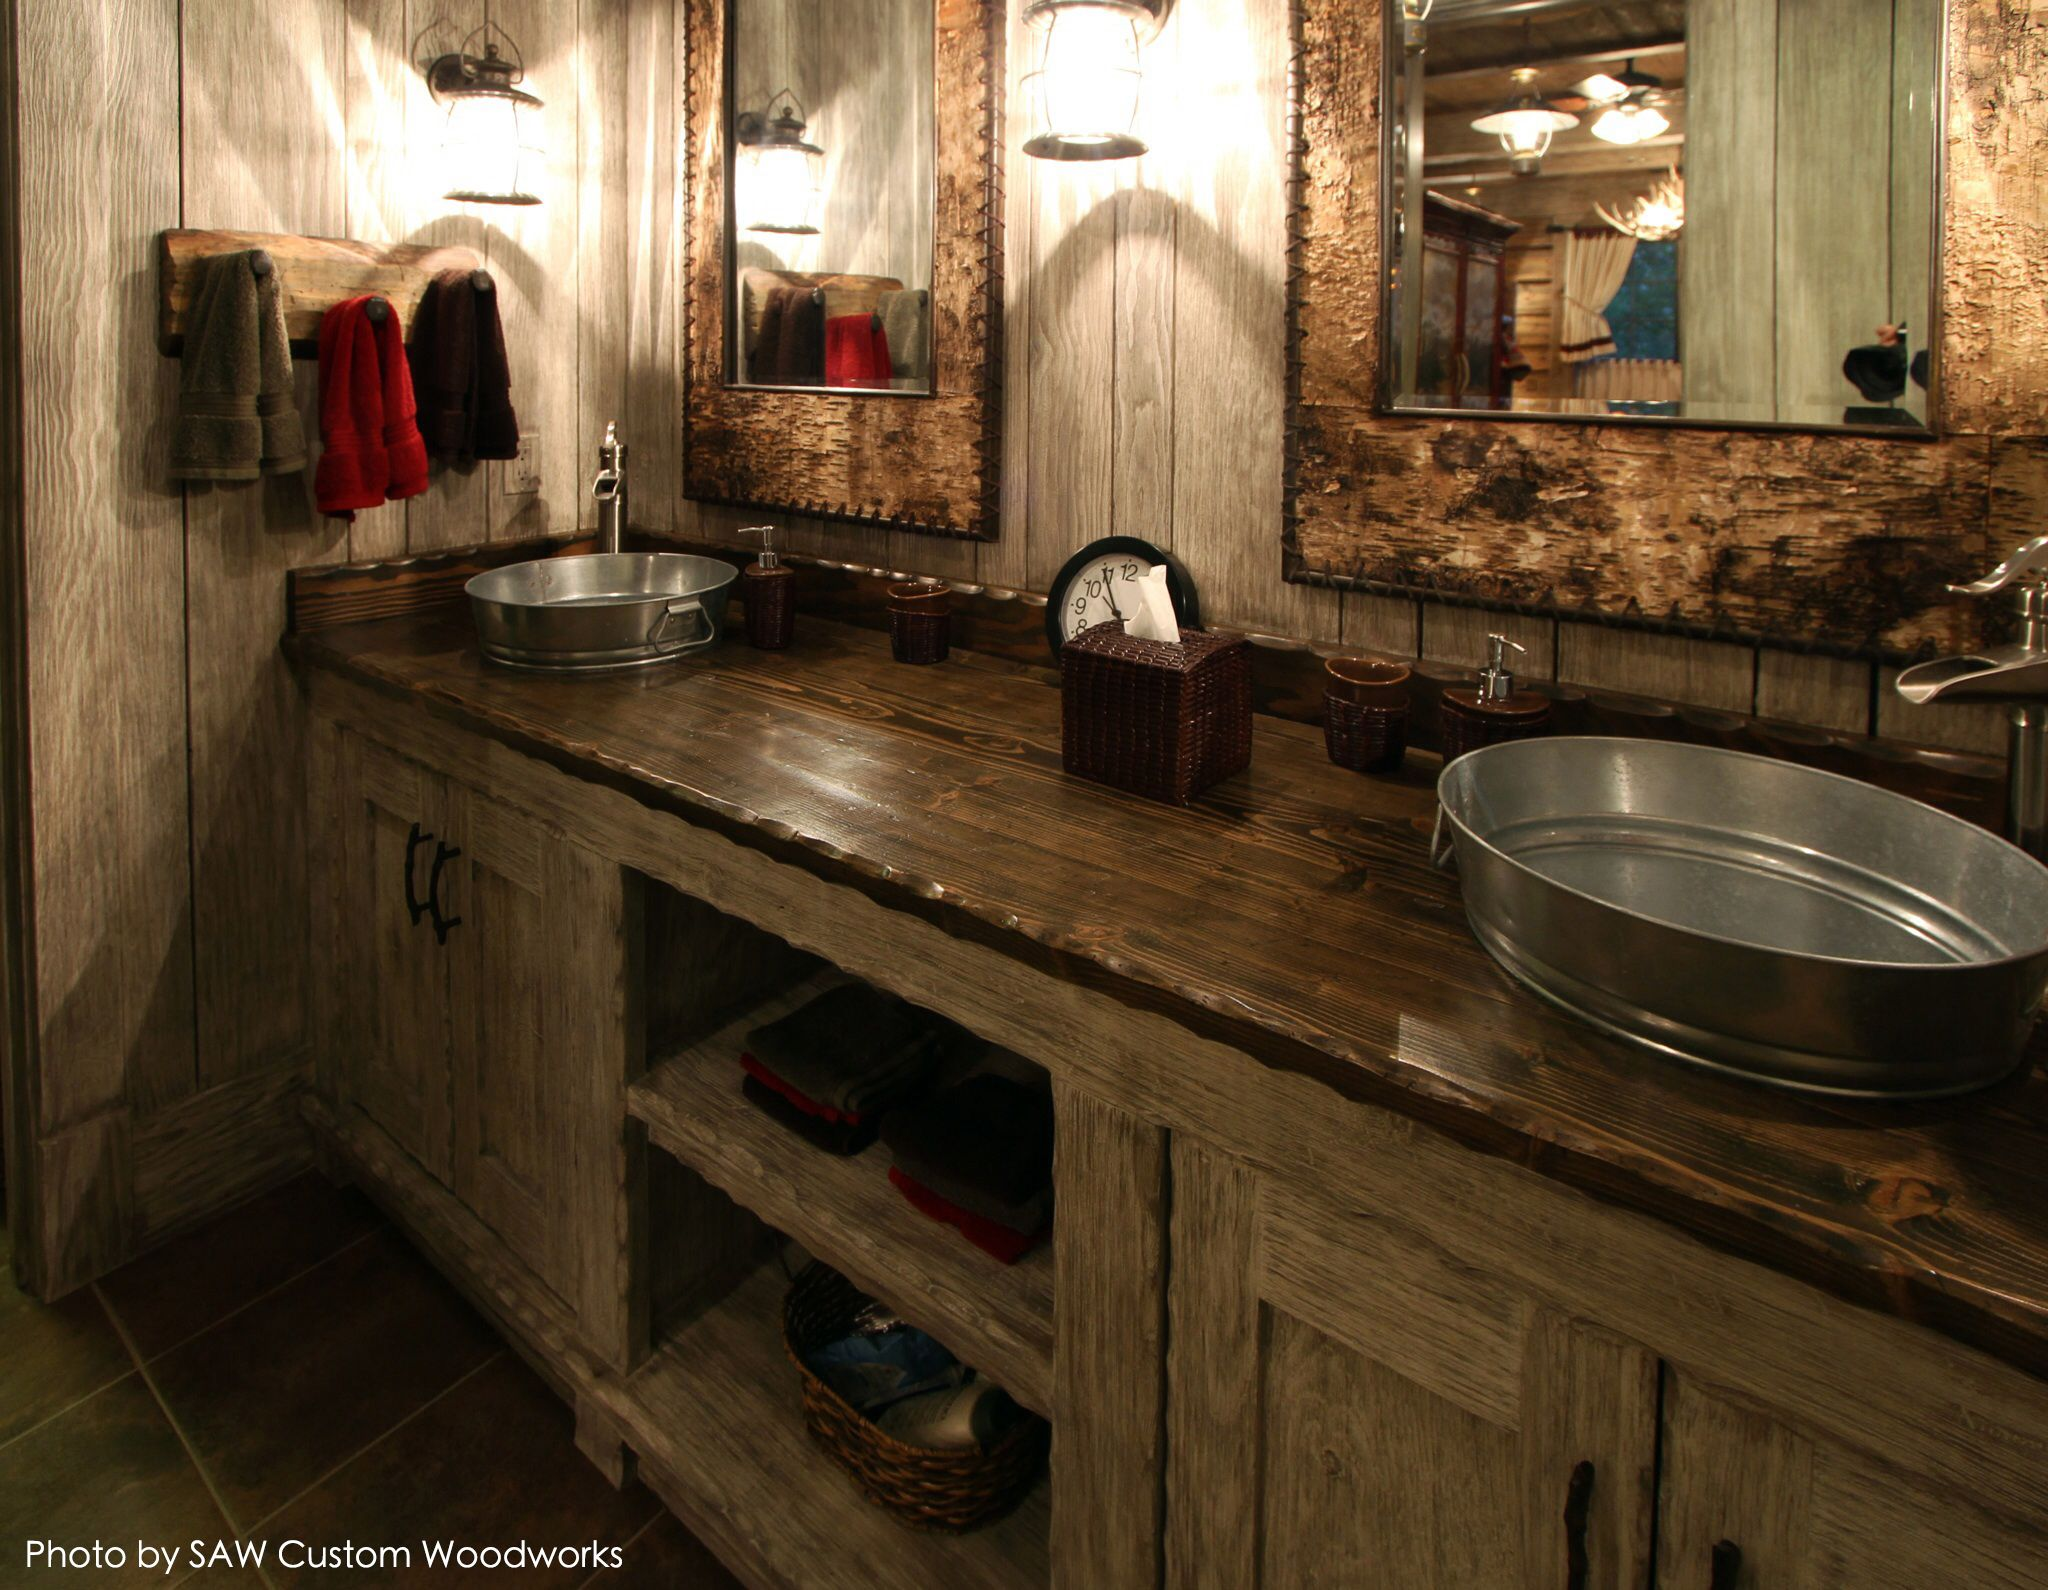 Sink Installation Cost Guide Cost To Install A Kitchen Sink Rustic Bath Rustic Bathroom Wash Tub Sink